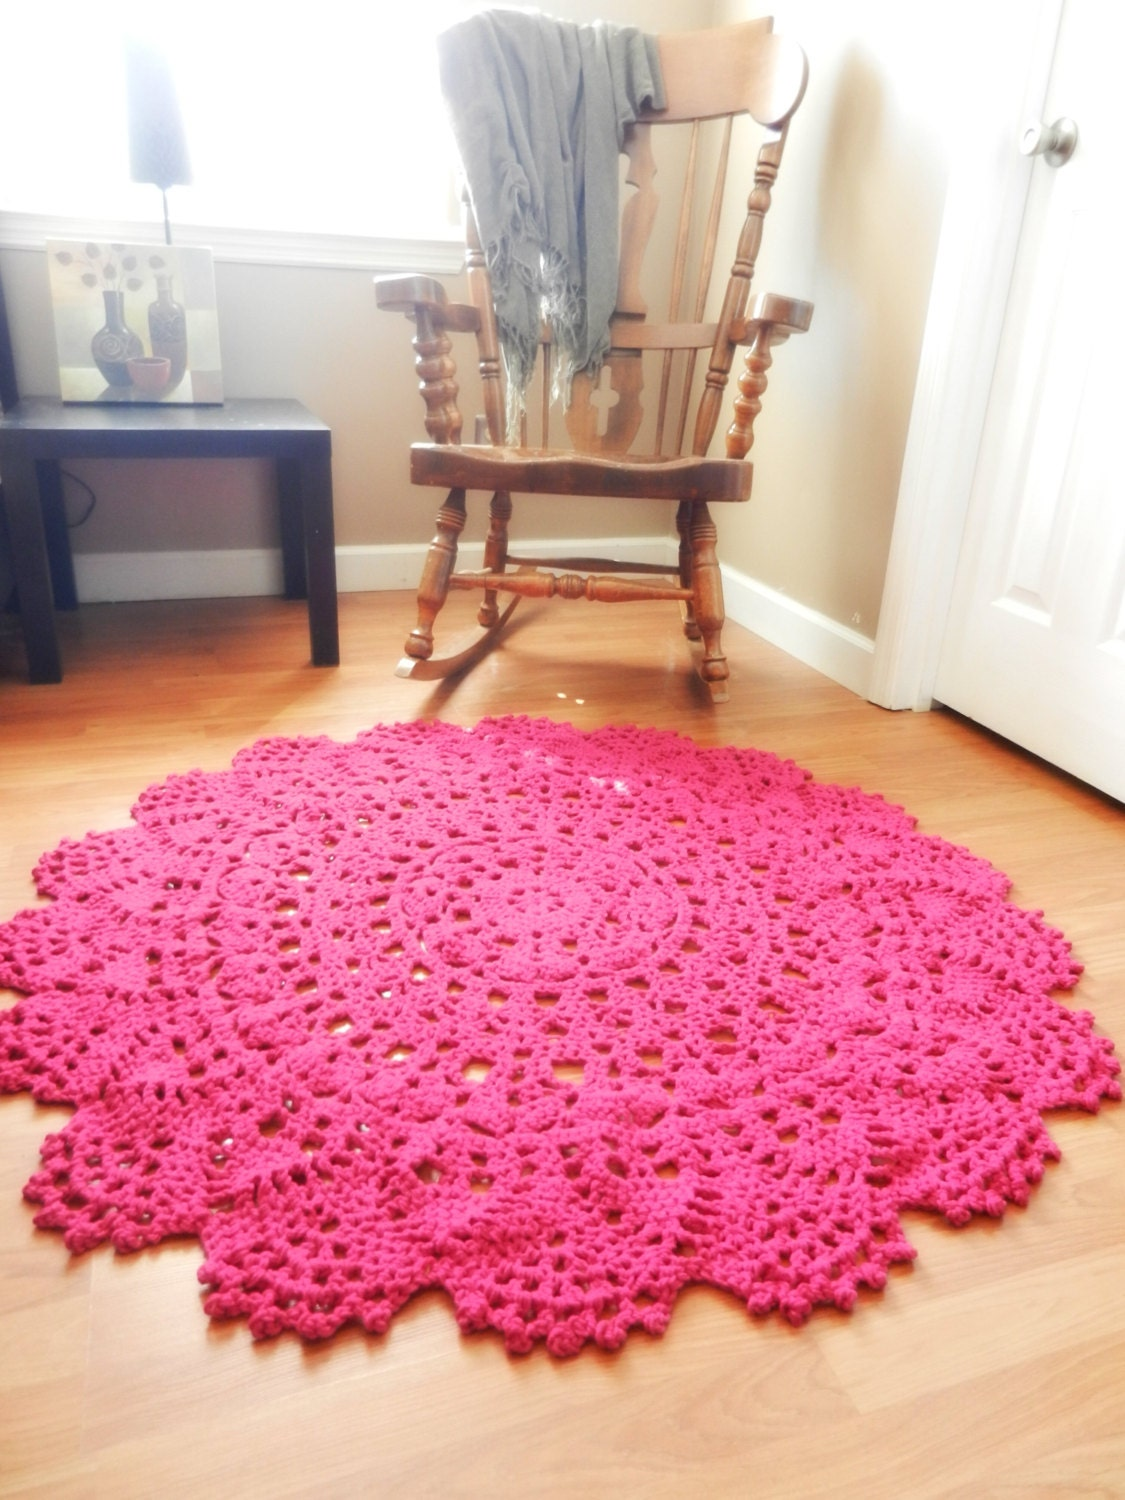 Giant Crochet Doily Rug Magenta Hot Pink Lace Large By